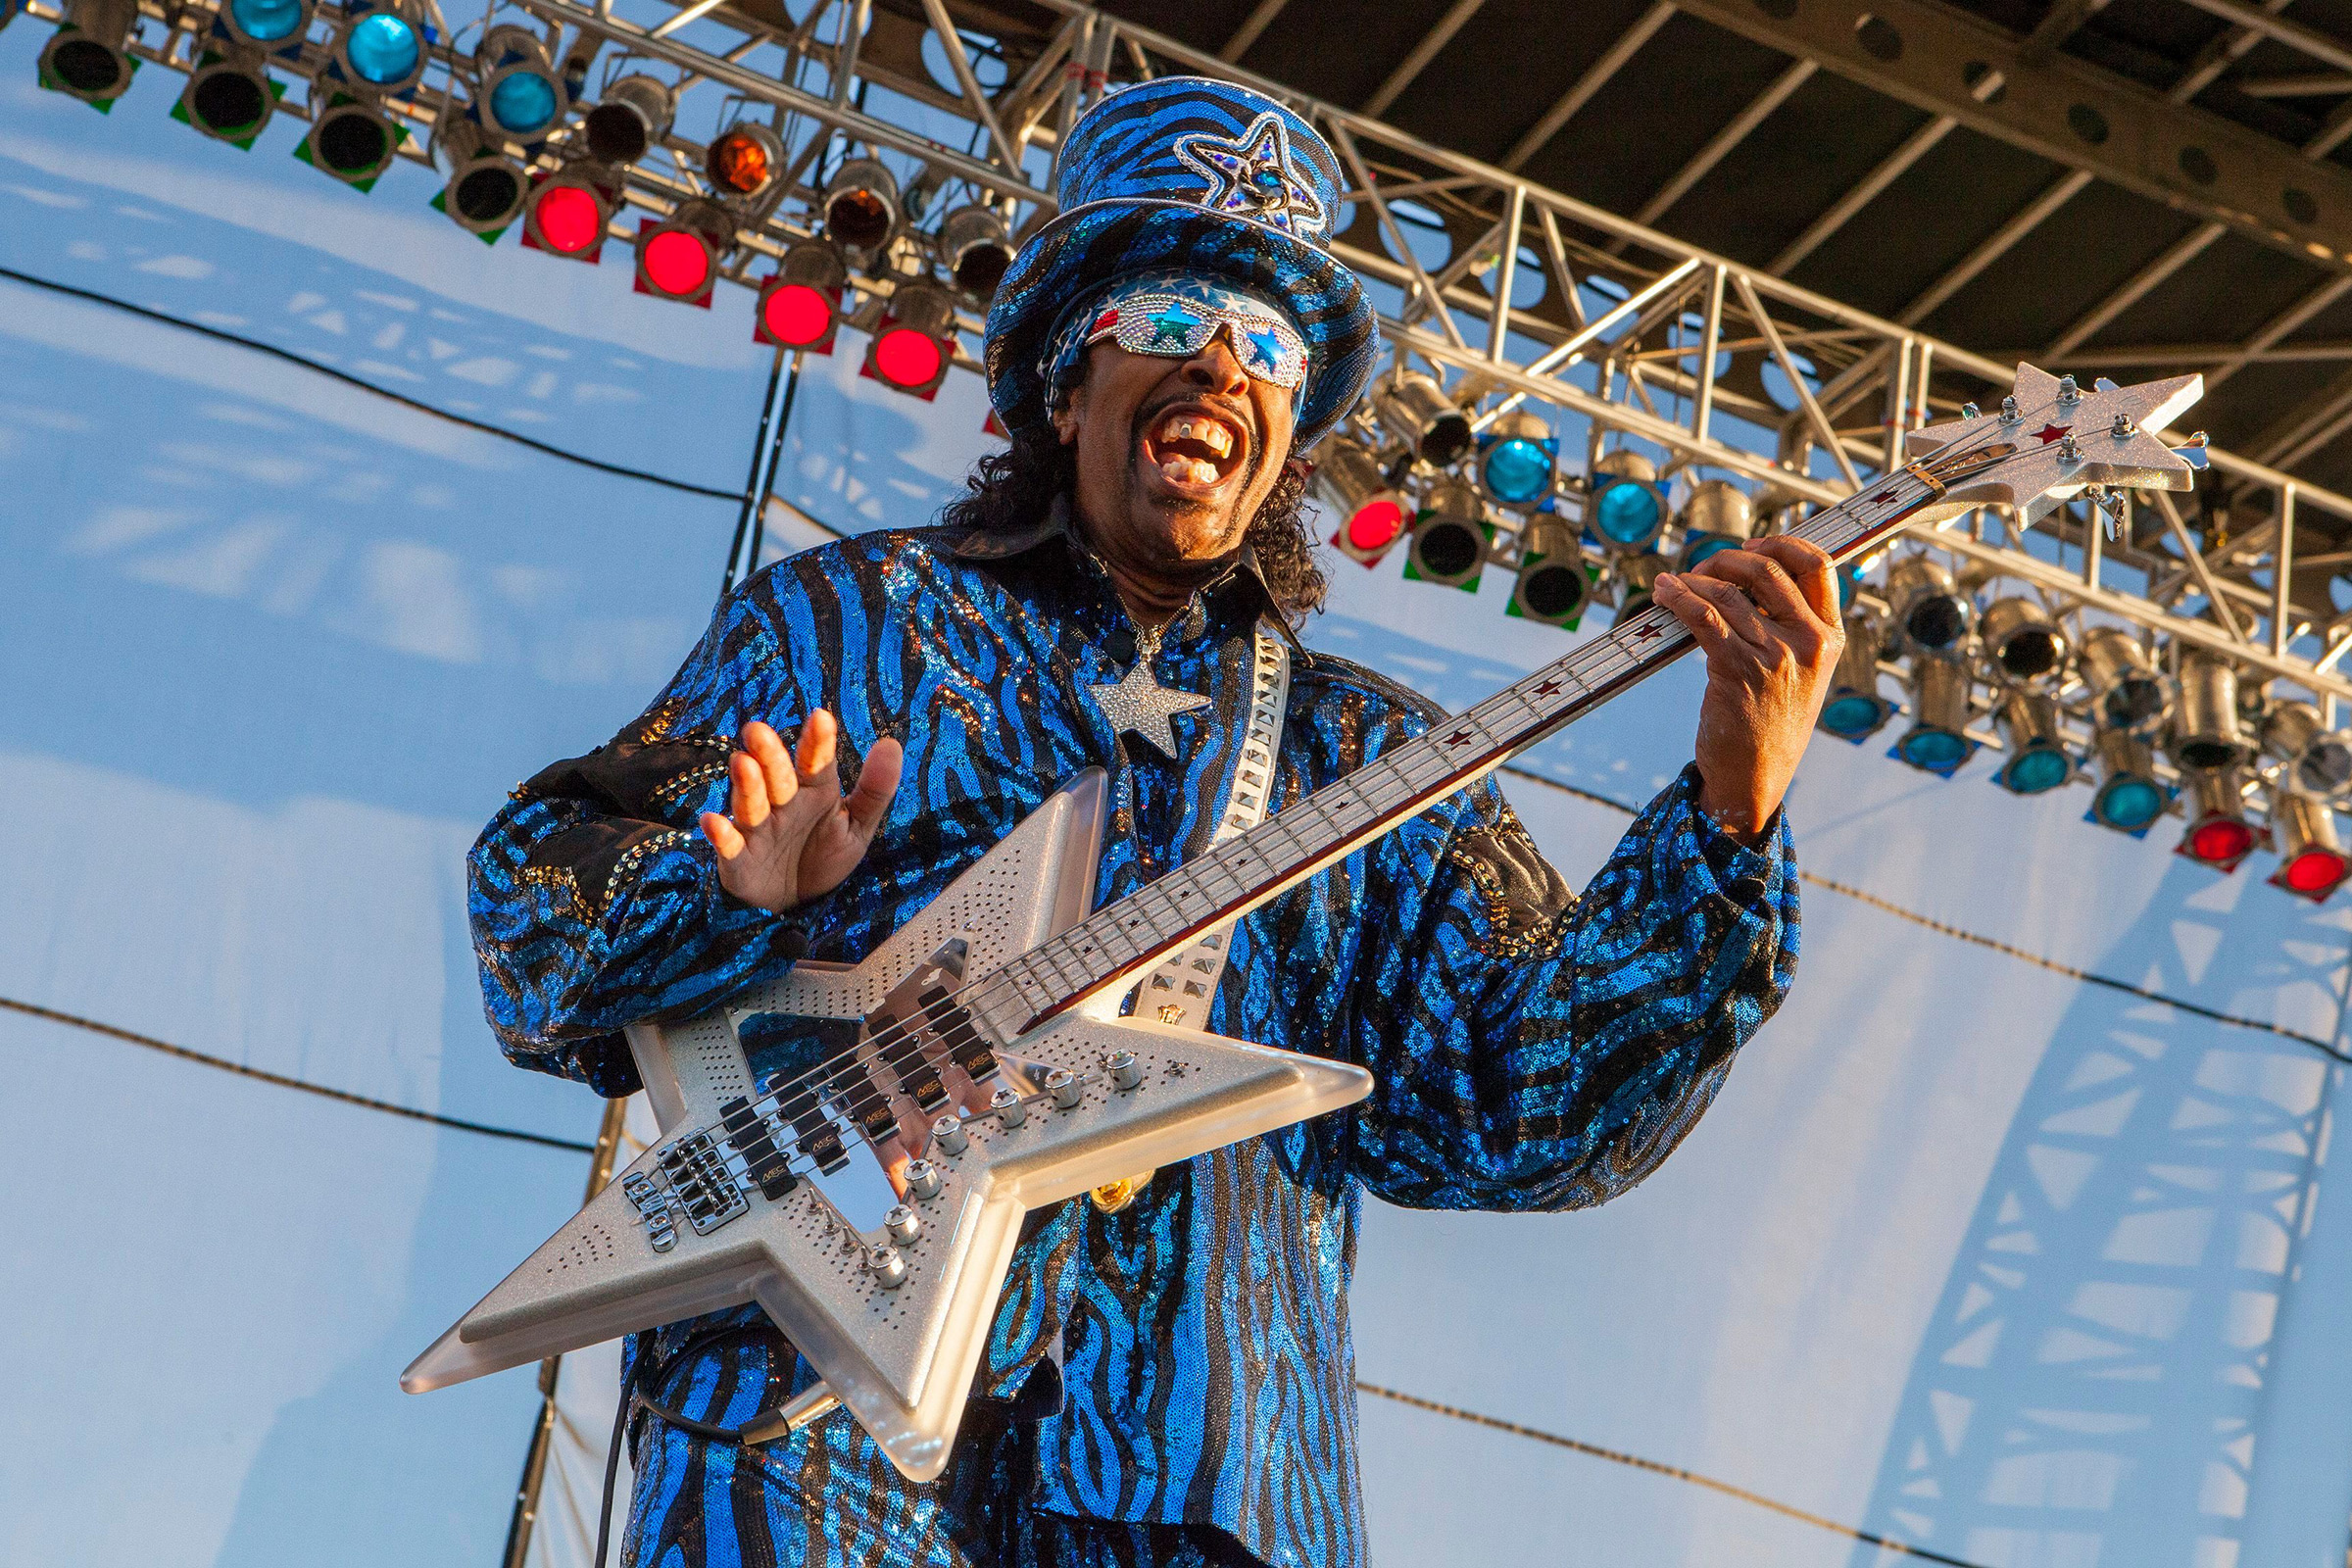 bootsy-collins-jb-still-the-man.jpg